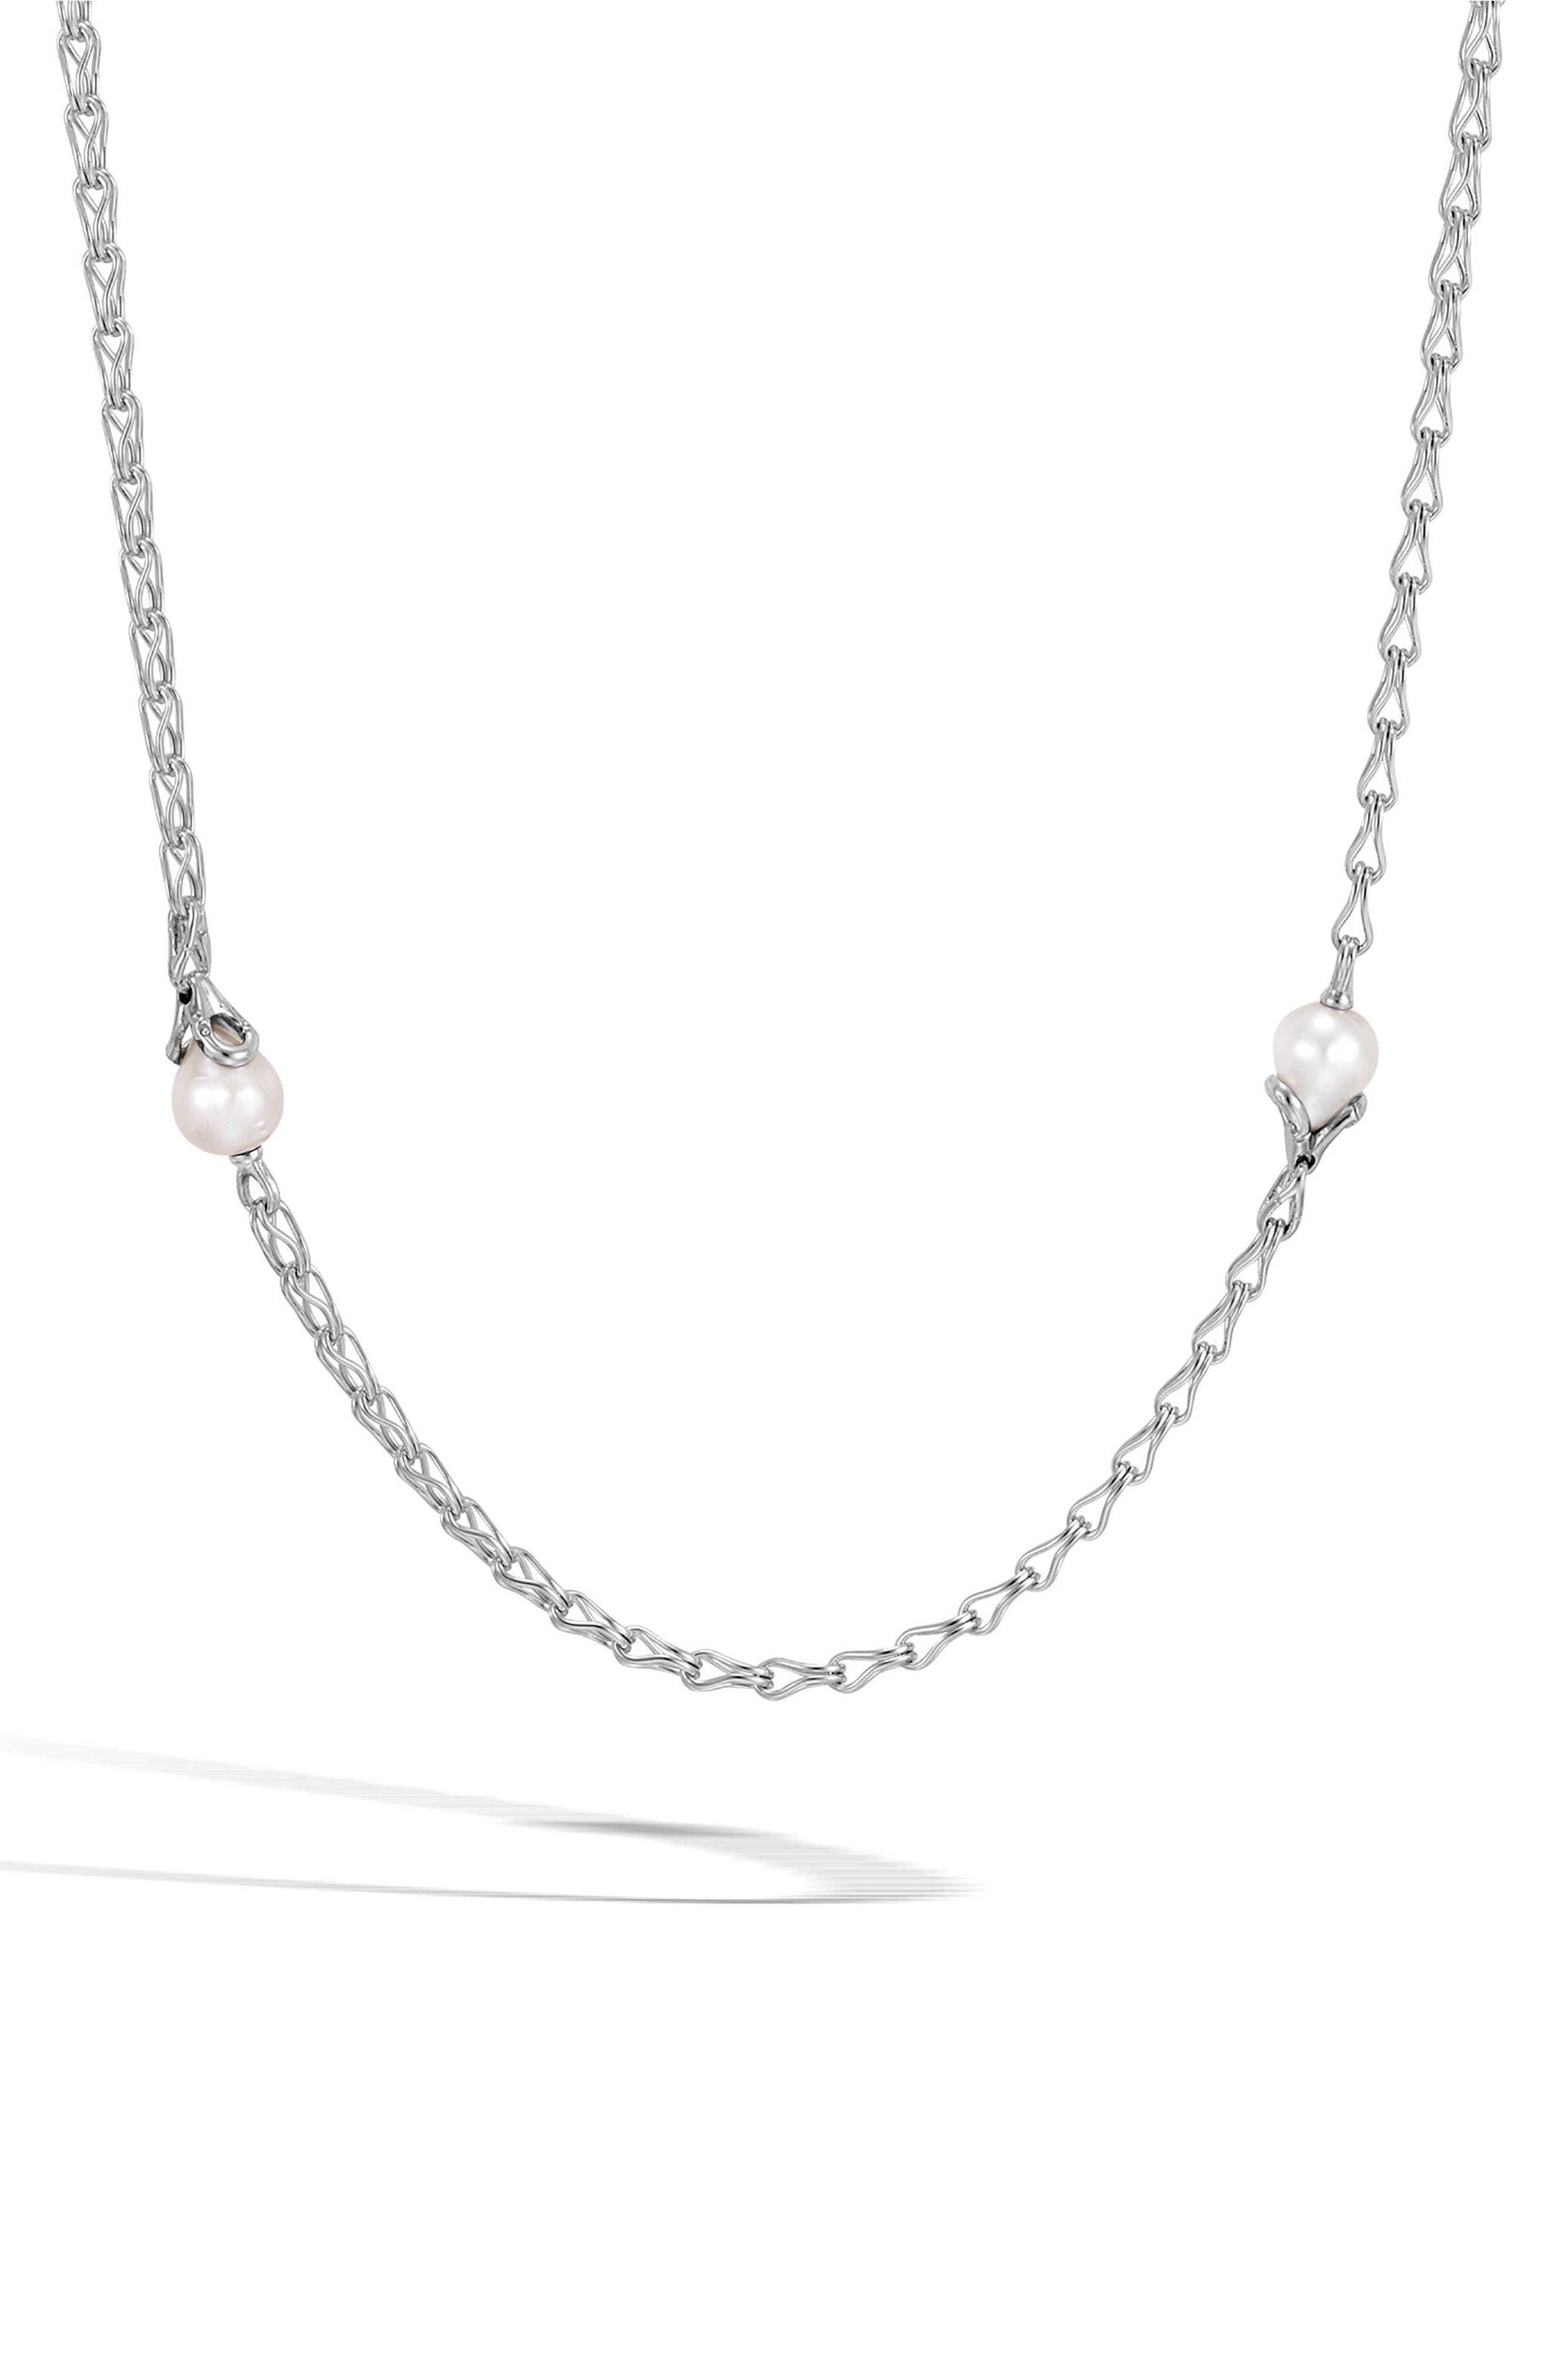 Bamboo Pearl Station Necklace,                             Main thumbnail 1, color,                             SILVER/ PEARL